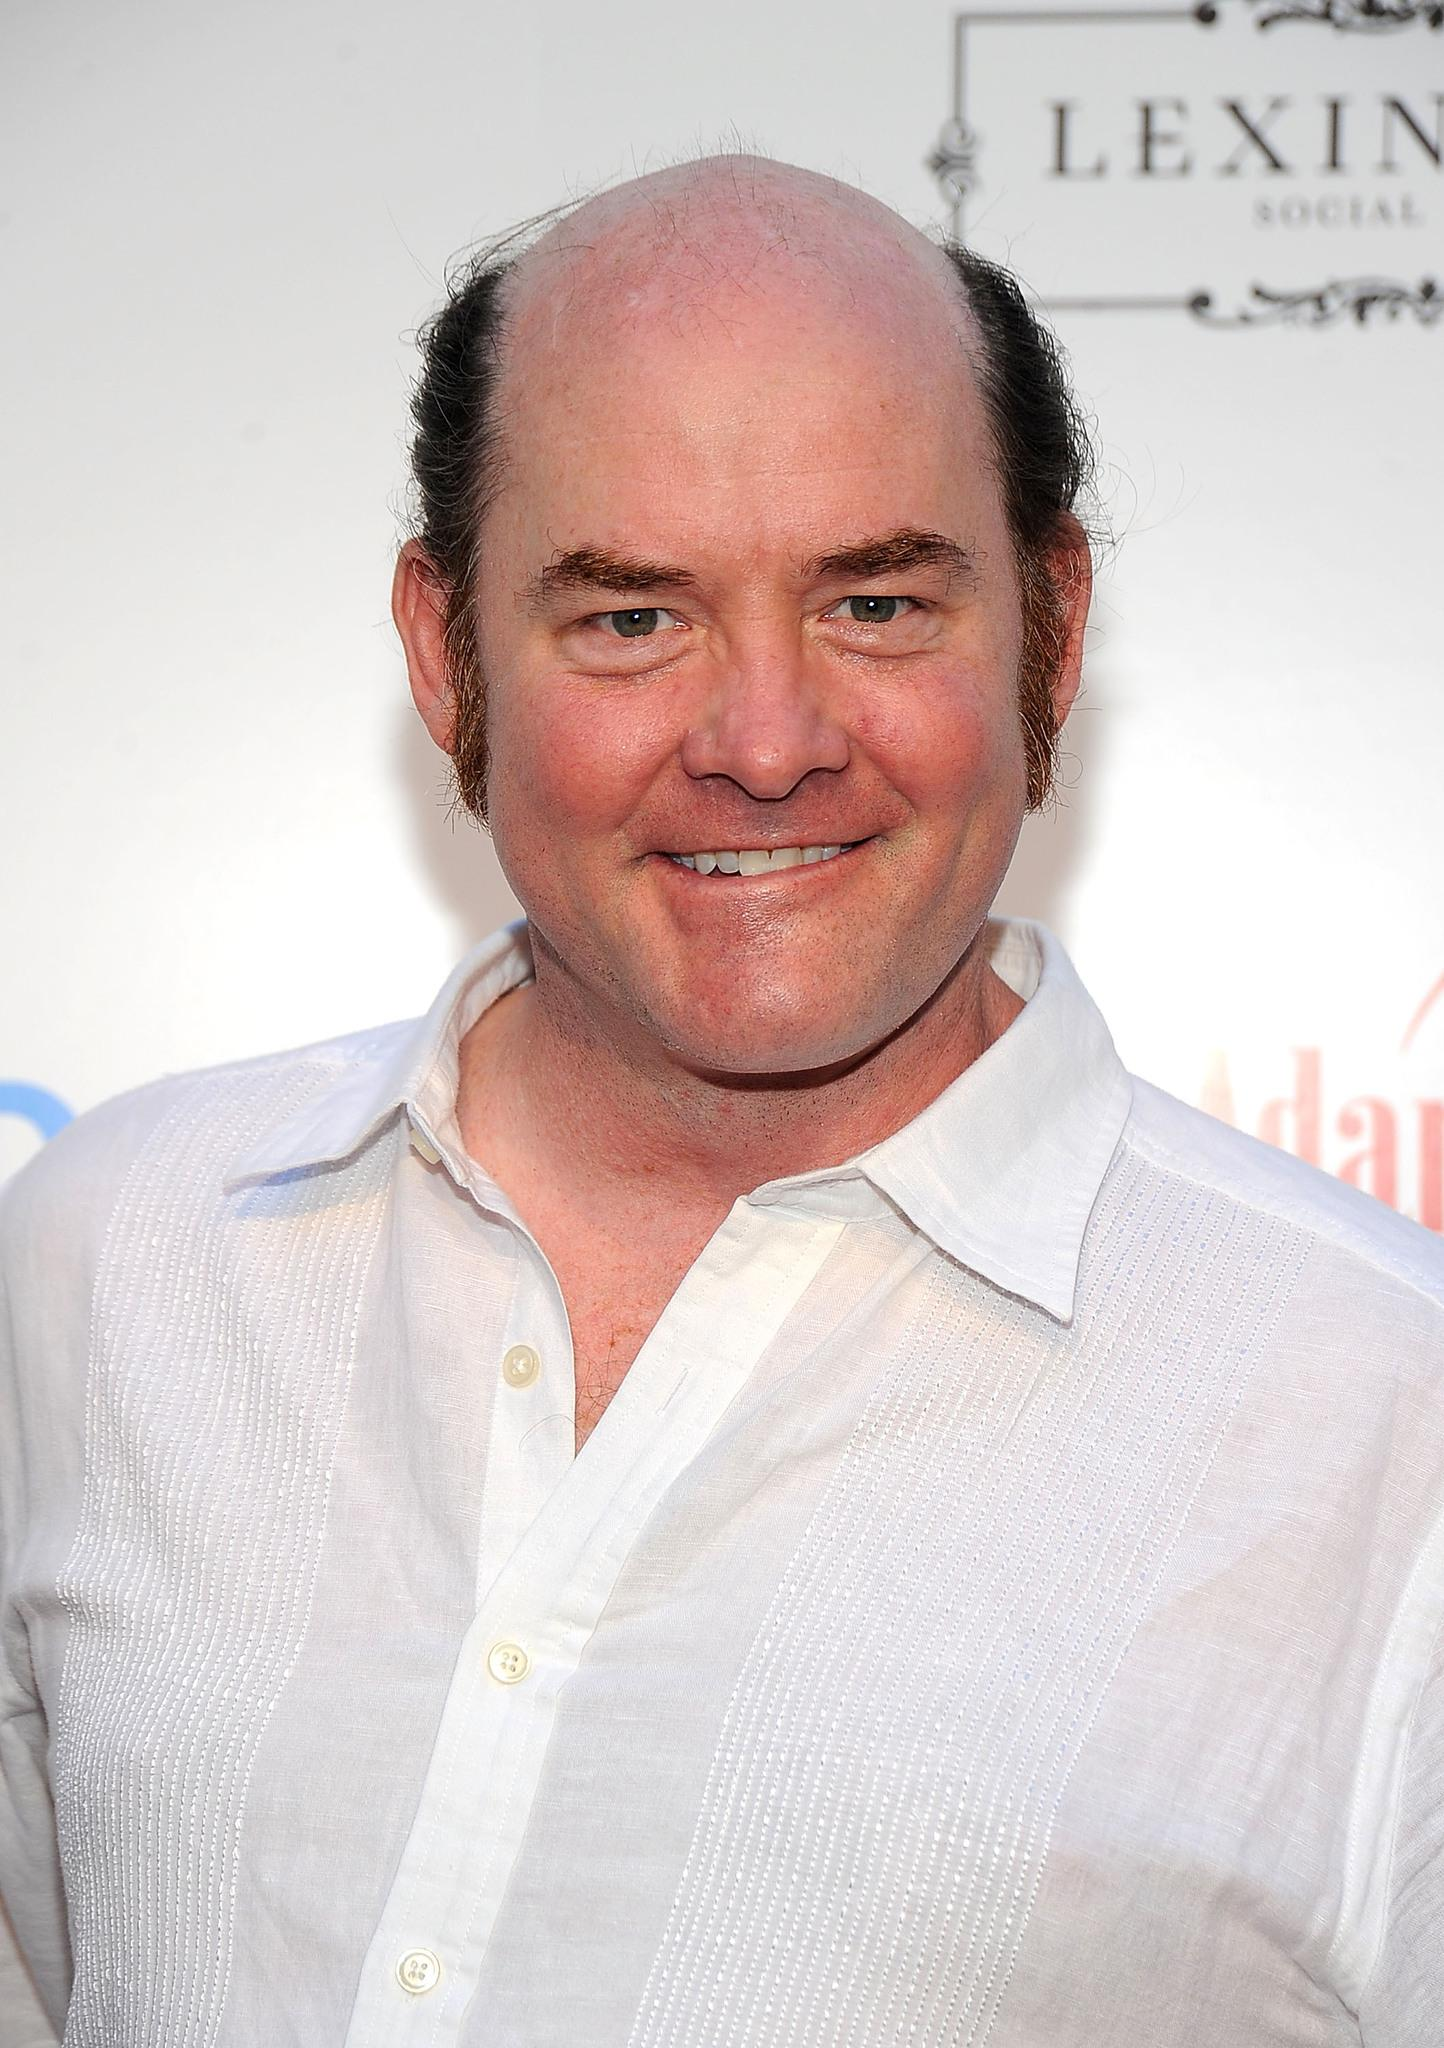 David Koechner earned a  million dollar salary, leaving the net worth at 5 million in 2017